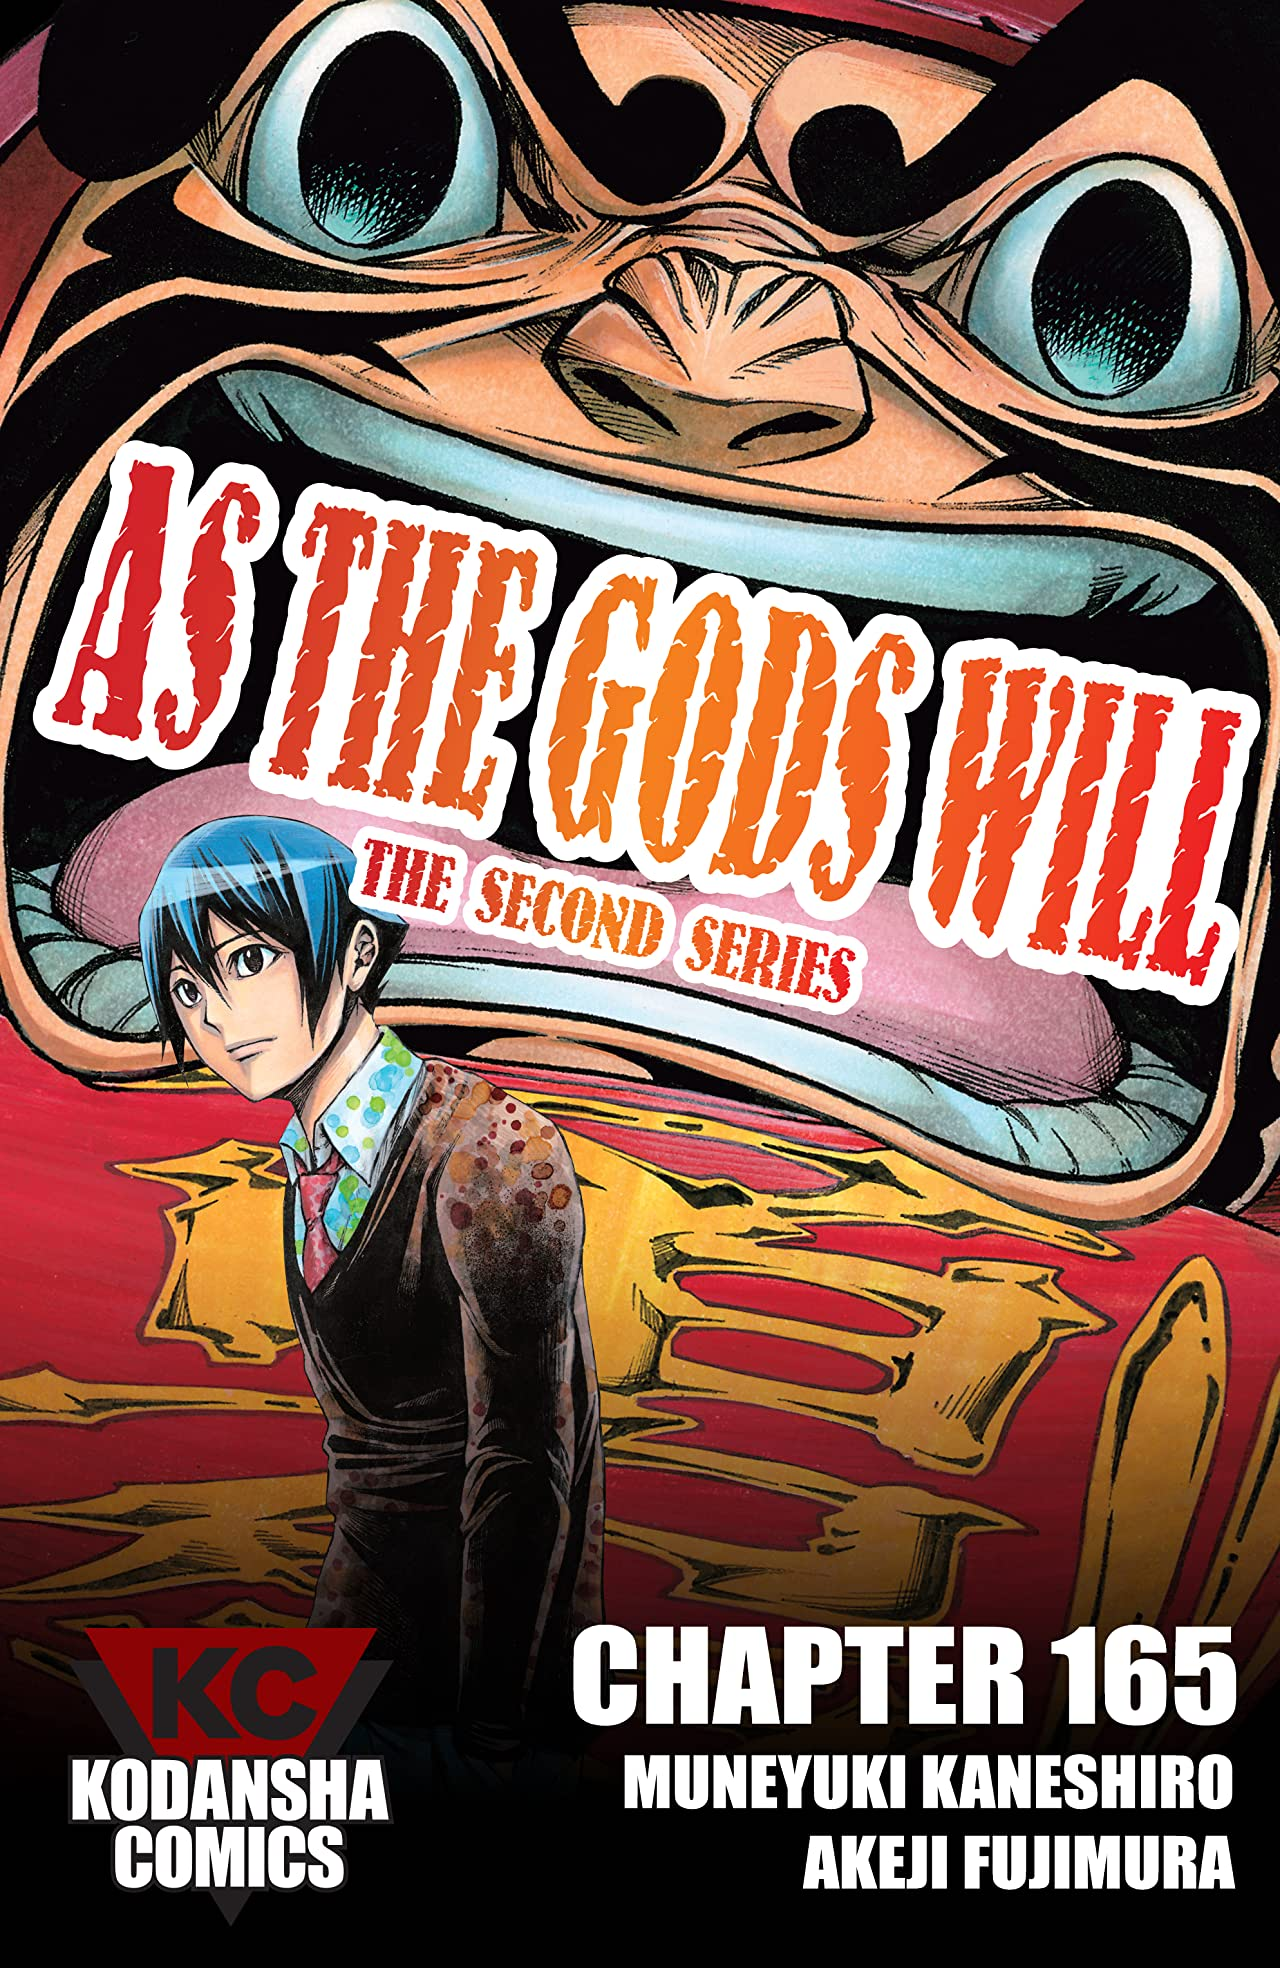 As The Gods Will: The Second Series #165